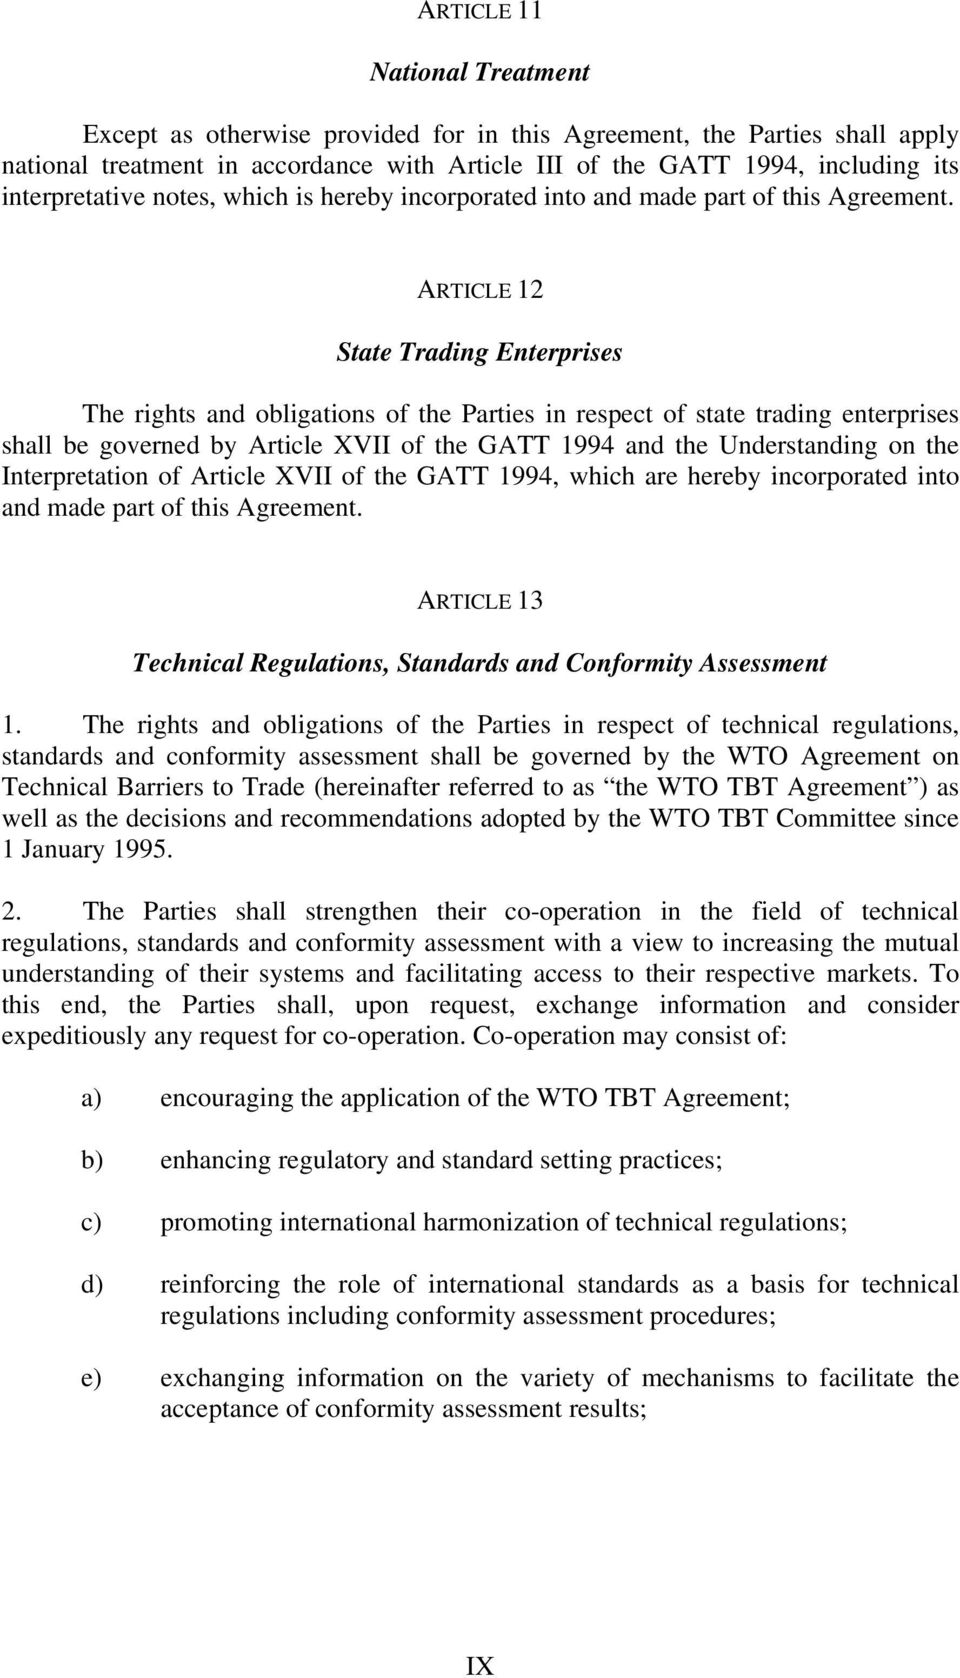 ARTICLE 12 State Trading Enterprises The rights and obligations of the Parties in respect of state trading enterprises shall be governed by Article XVII of the GATT 1994 and the Understanding on the